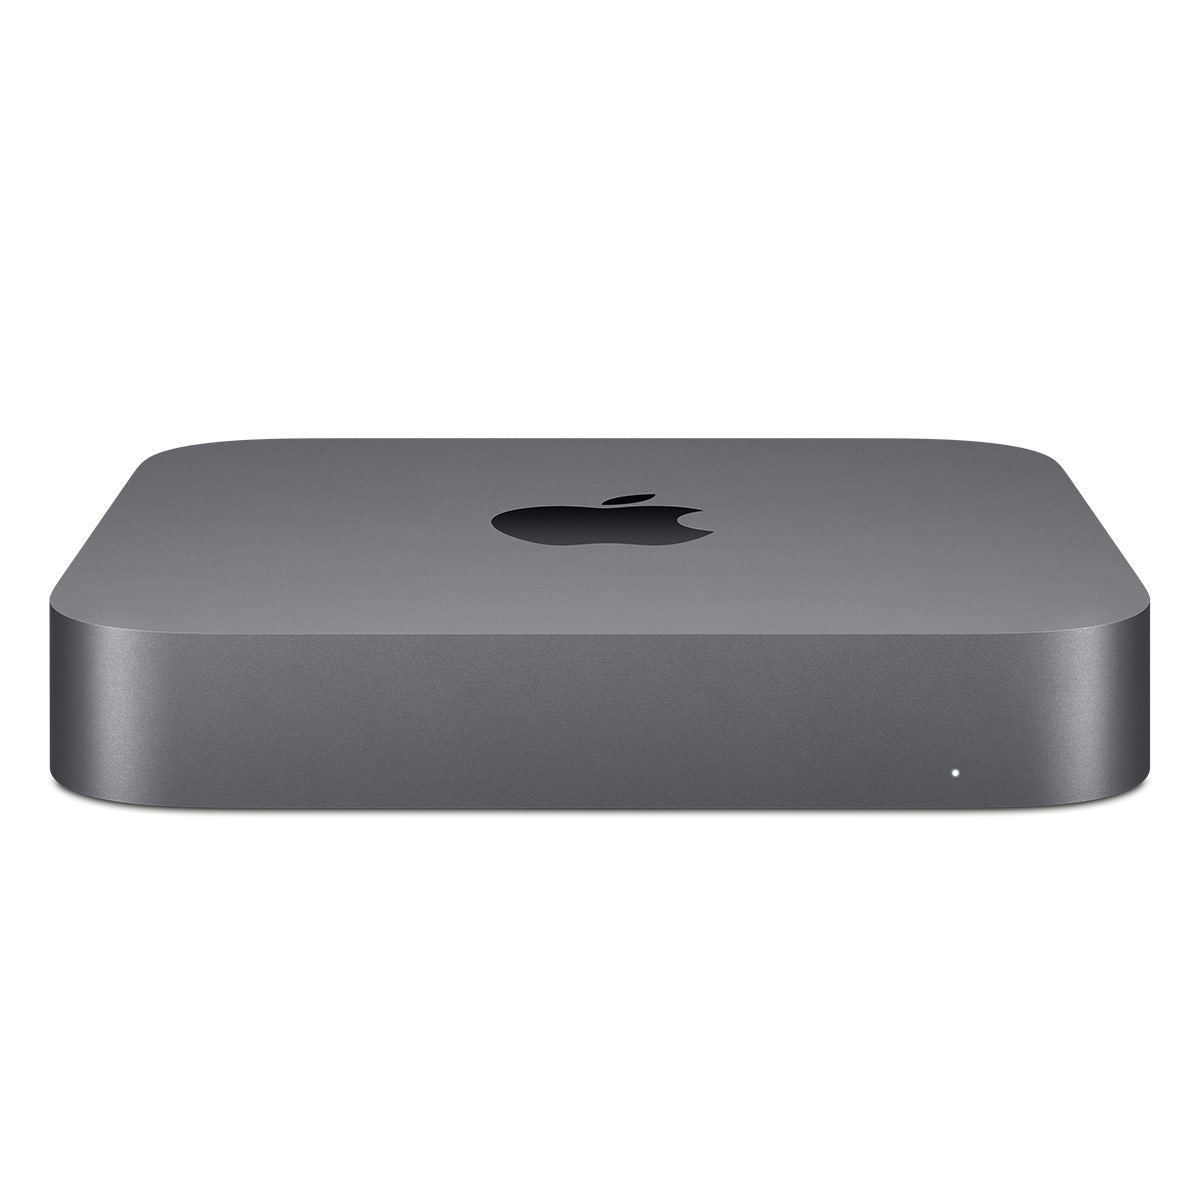 Mac mini 6 Core i5 3.0GHz 8GB 512GB Flash Intel UHD 630 1Gb